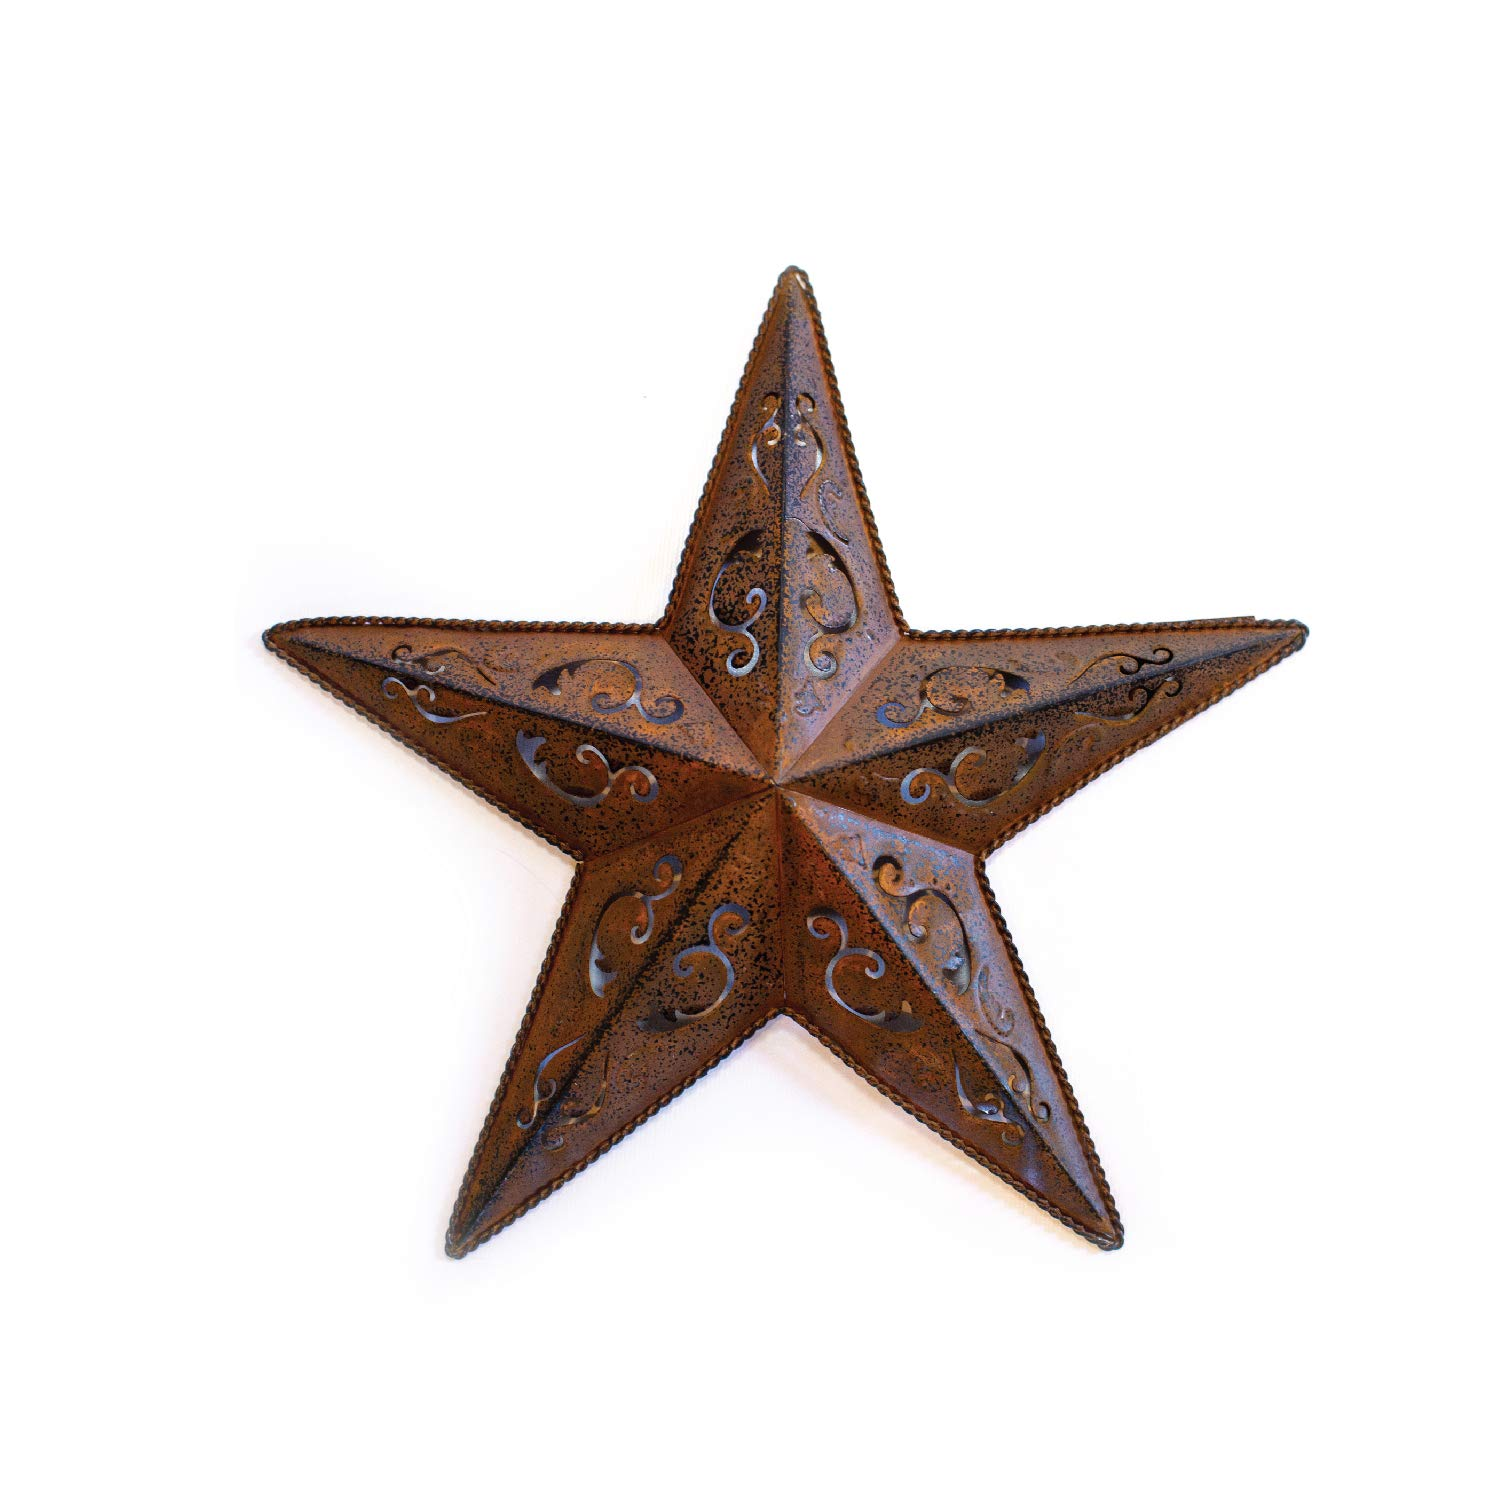 "RUSTY LACY METAL BARN STAR 18 - 1X 18"" rustic cut out style country indoor outdoor Christmas home decor. Interior exterior lacey metal stars decorations look great hanging on house walls fence porch"